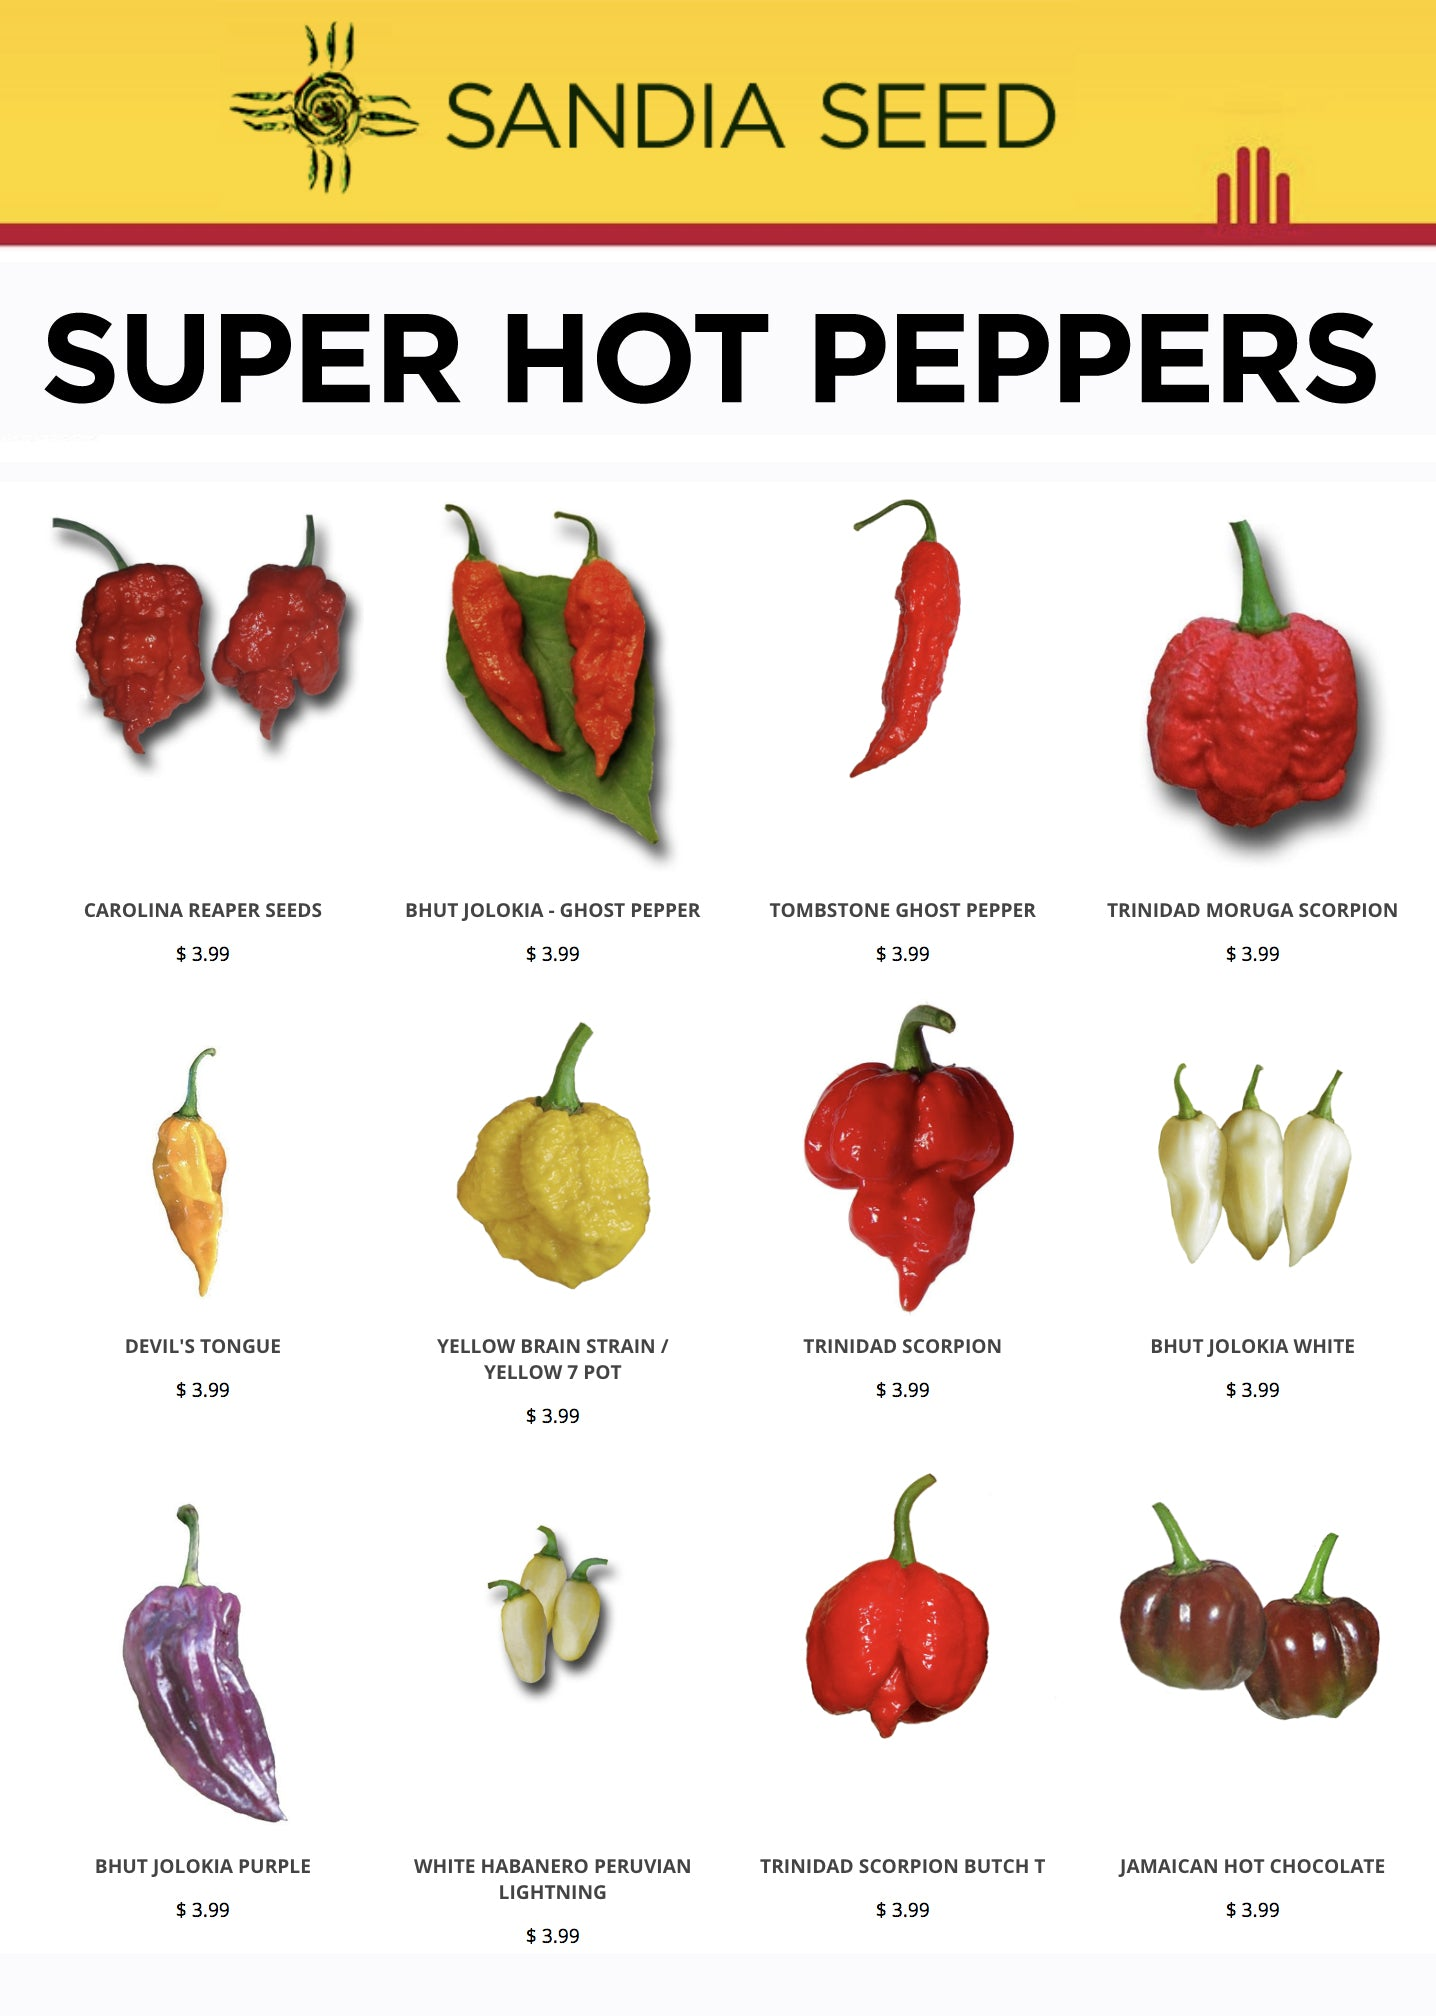 Small Seed Company for Super Hot Peppers - Sandia Seed